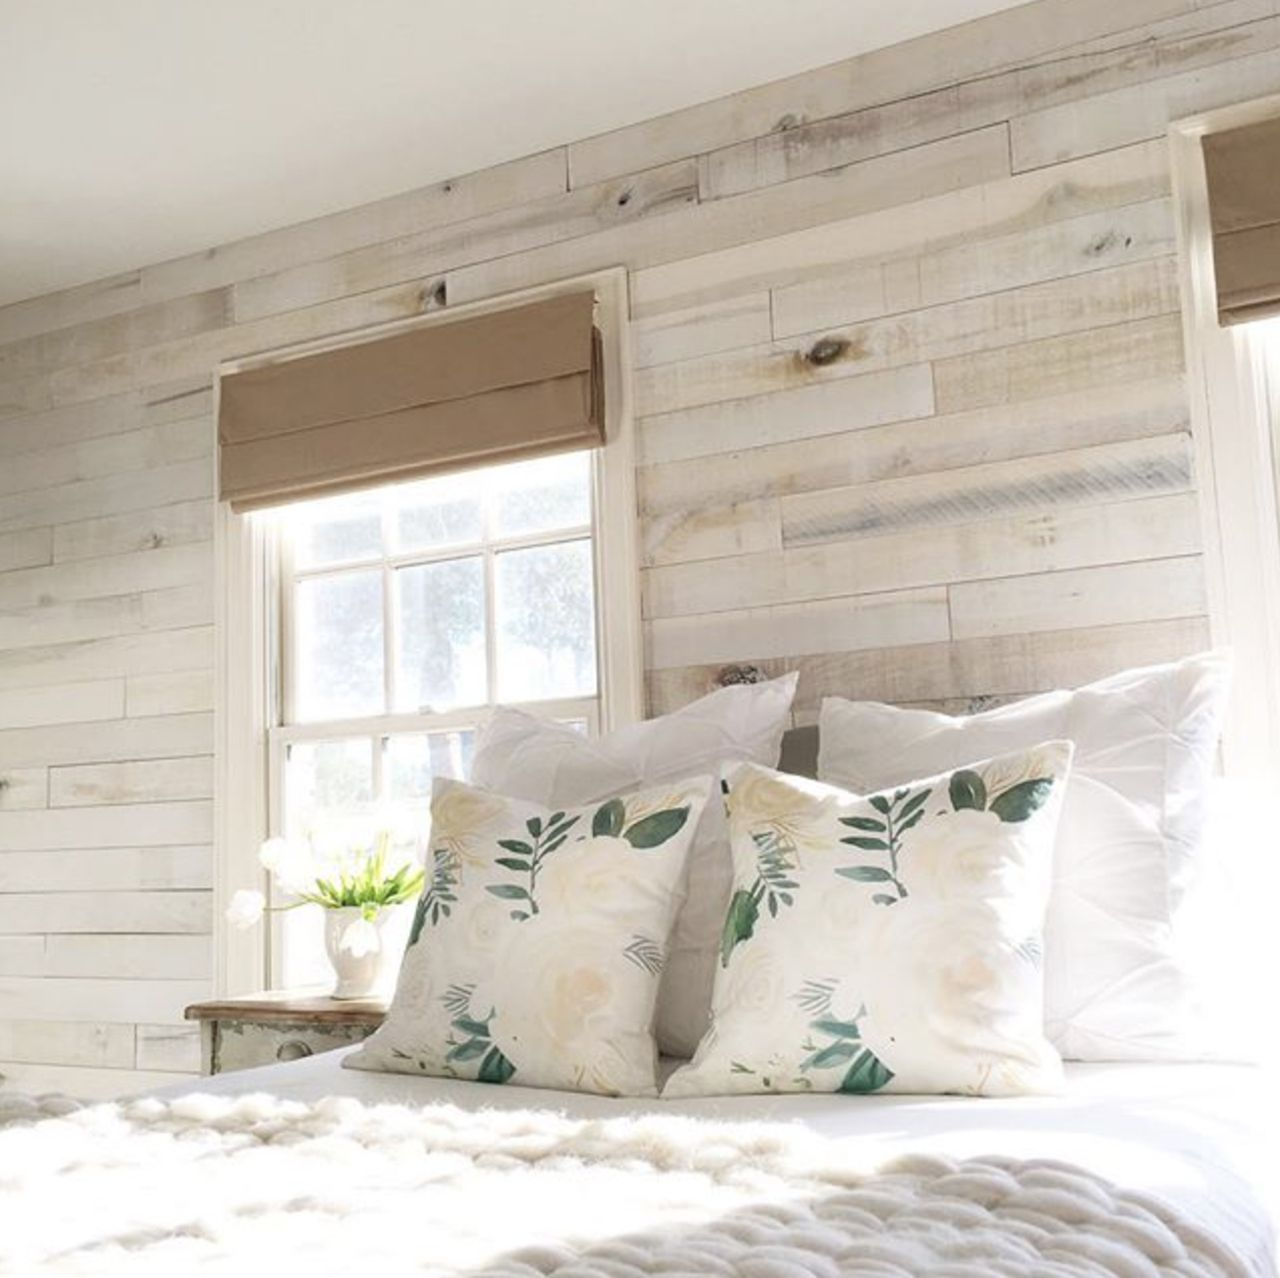 White Wash Wall Boards Bedroom Accent Wall By Angela Wood Bedroom Accents Pallet Wall Bedroom Wood Accent Wall Bedroom